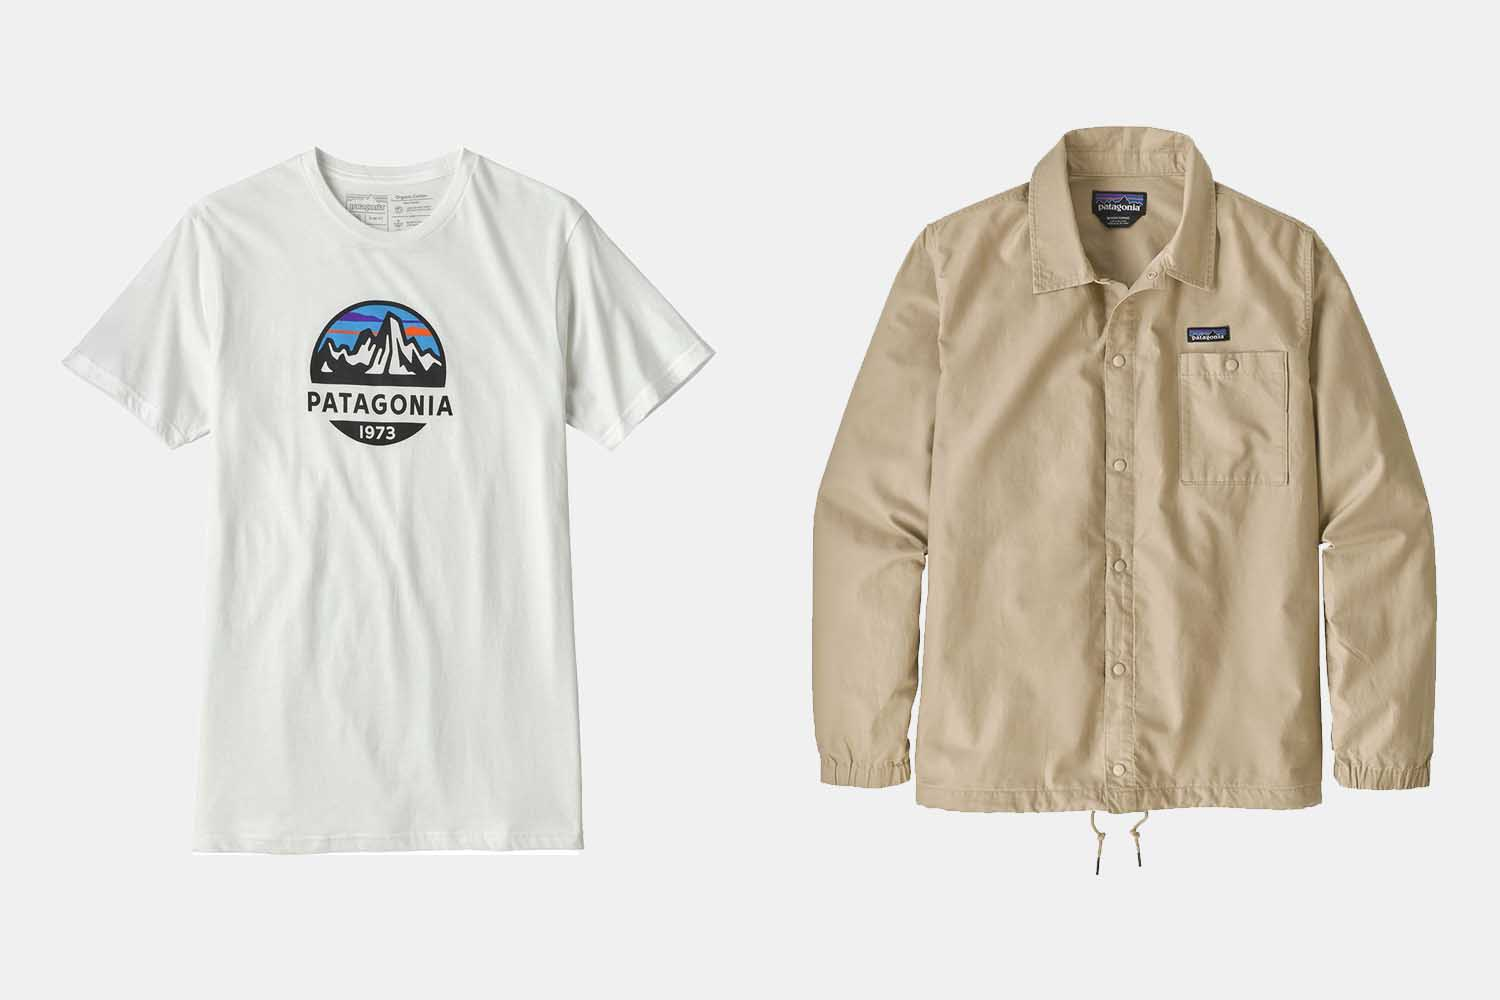 Deal: Take 30% Off All Patagonia Gear at Backcountry